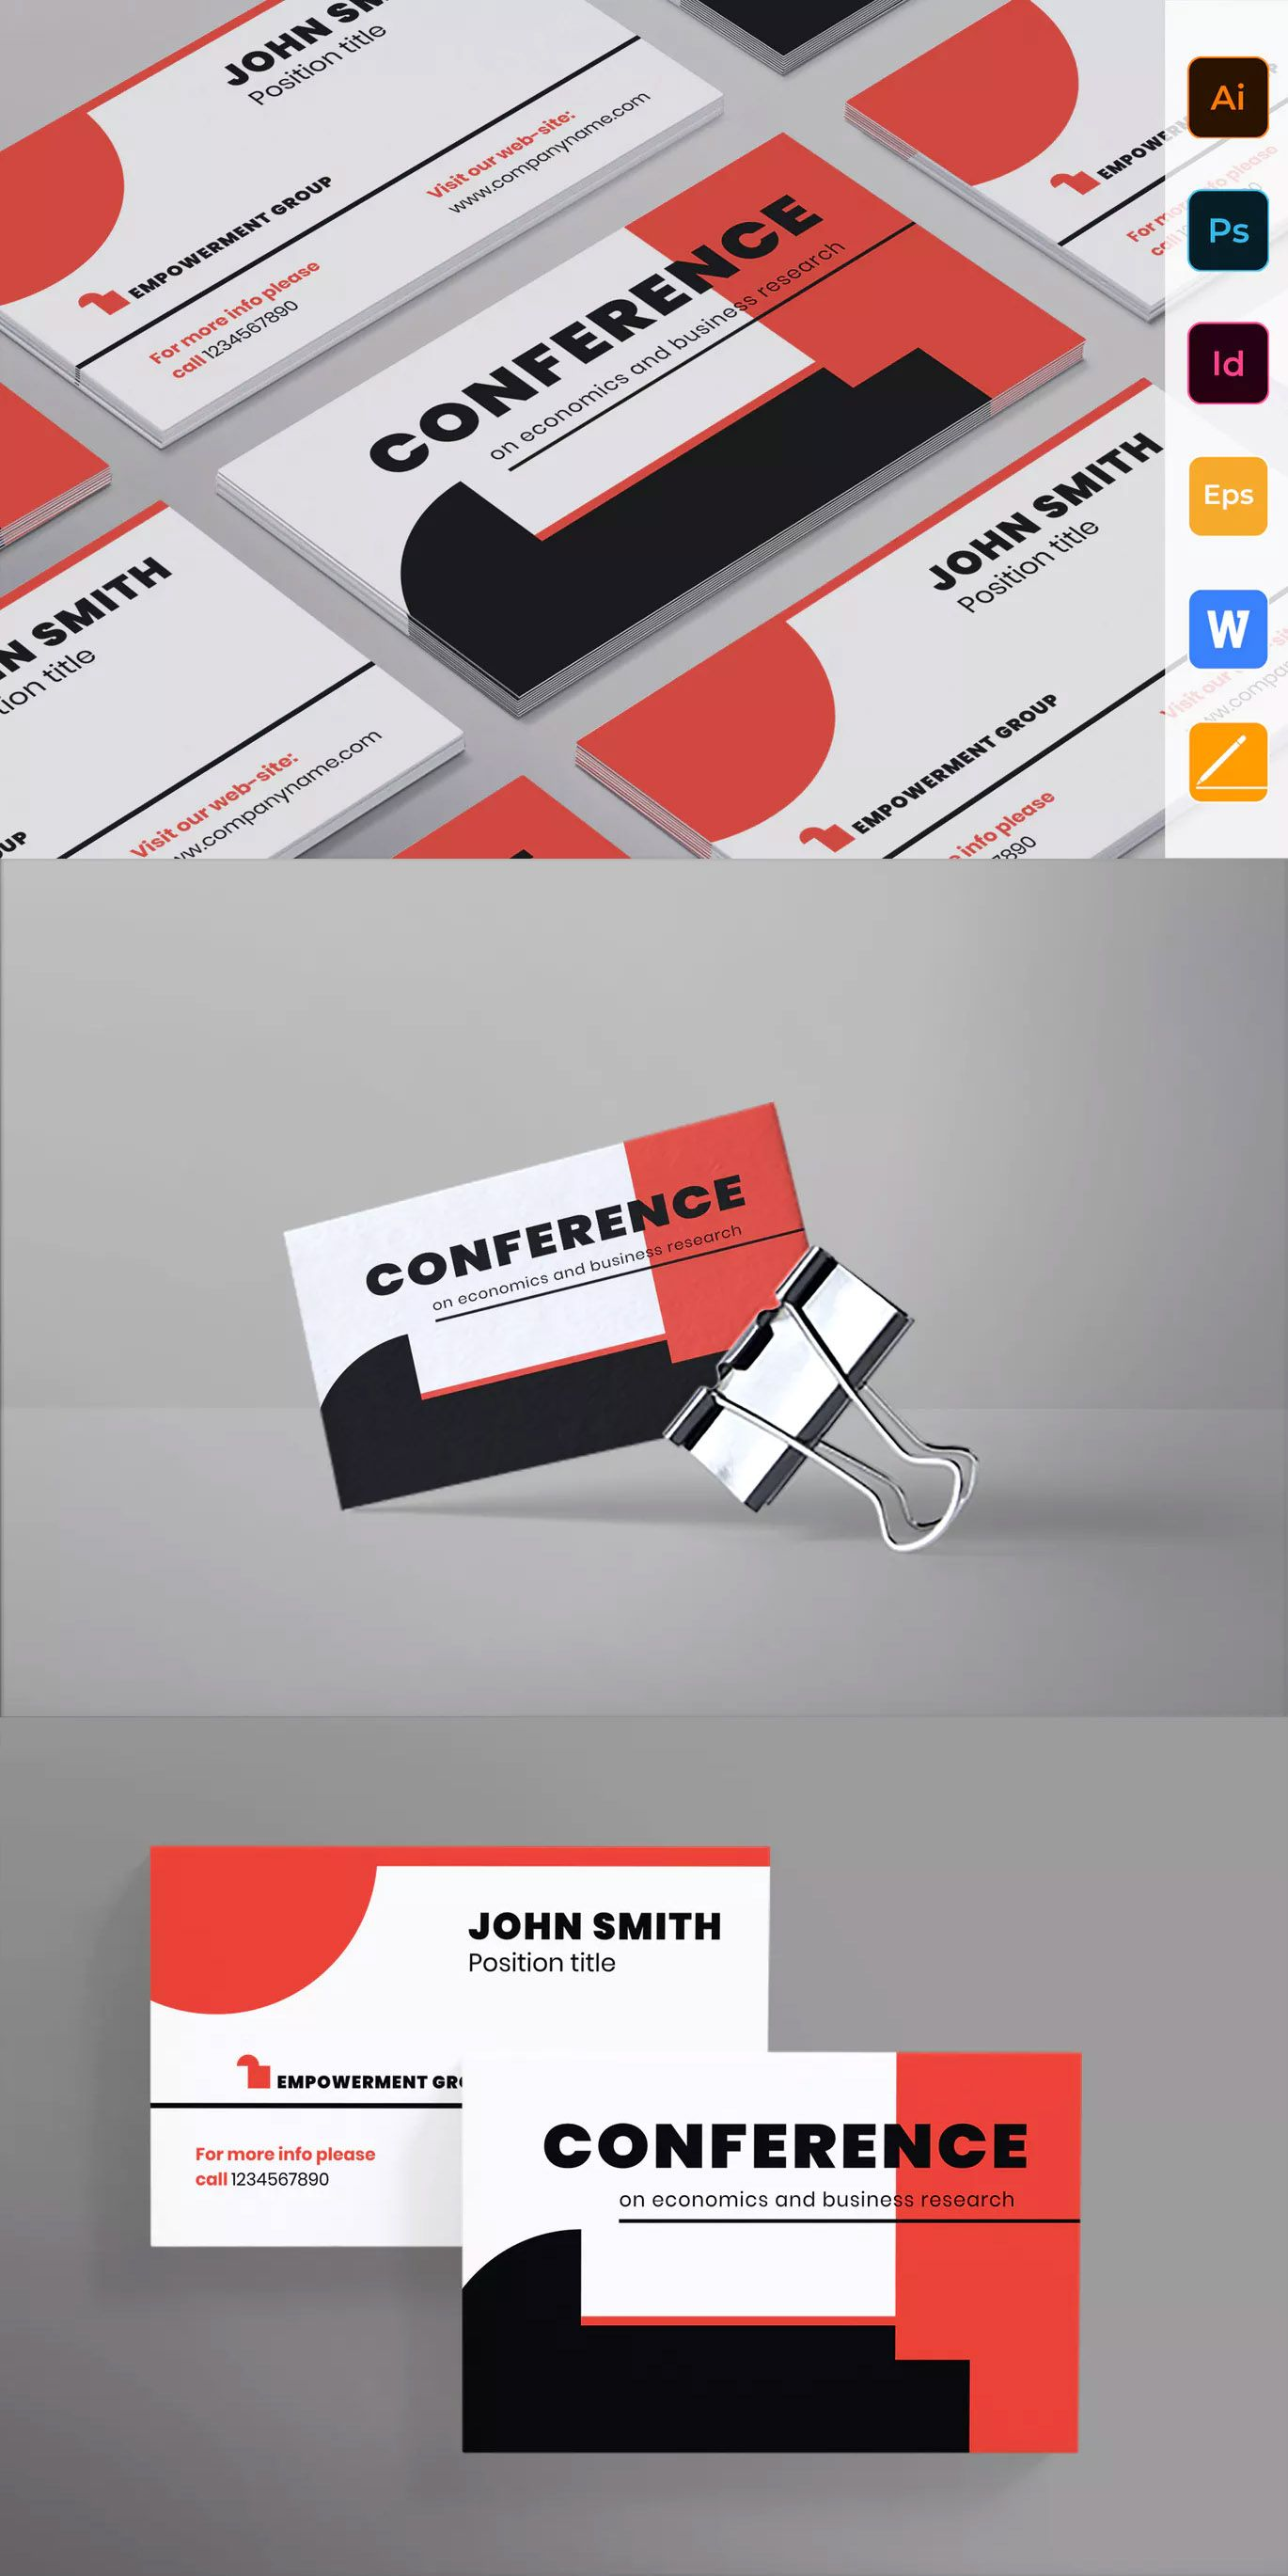 Conference Business Card By Ambergraphics On Envato Elements Business Card Graphic Business Card Template Business Cards